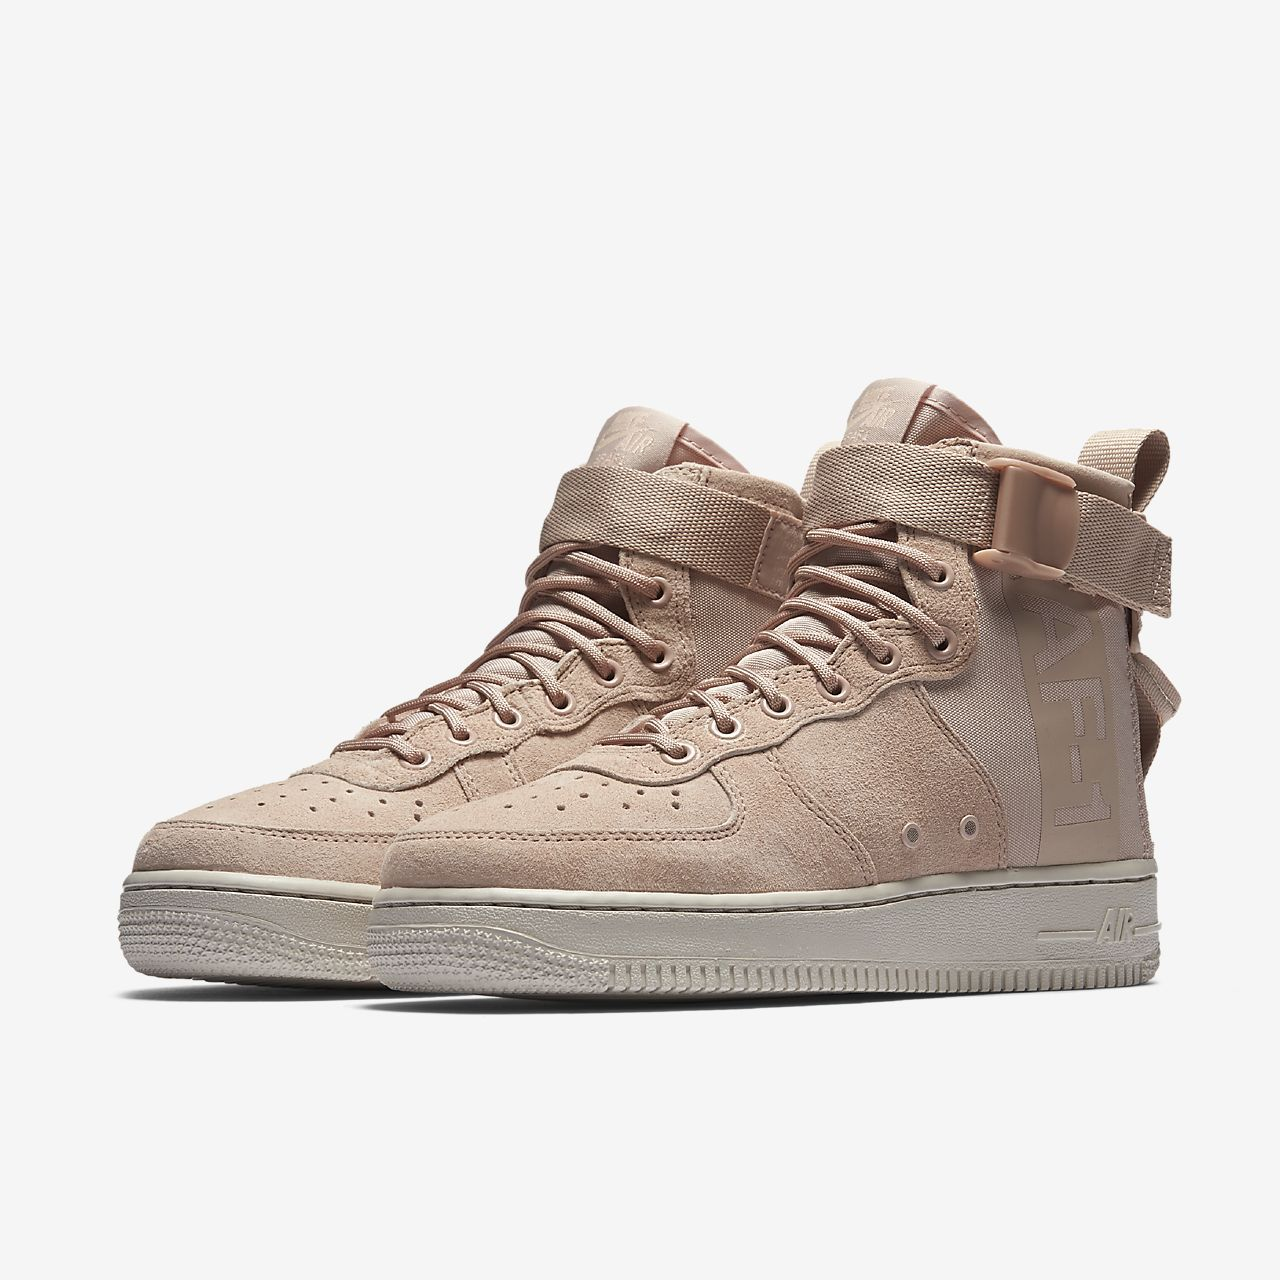 low priced 199dc 5acfc Nike SF Air Force 1 Mid Women's Boot | SHOES! | Shoes, Boots ...